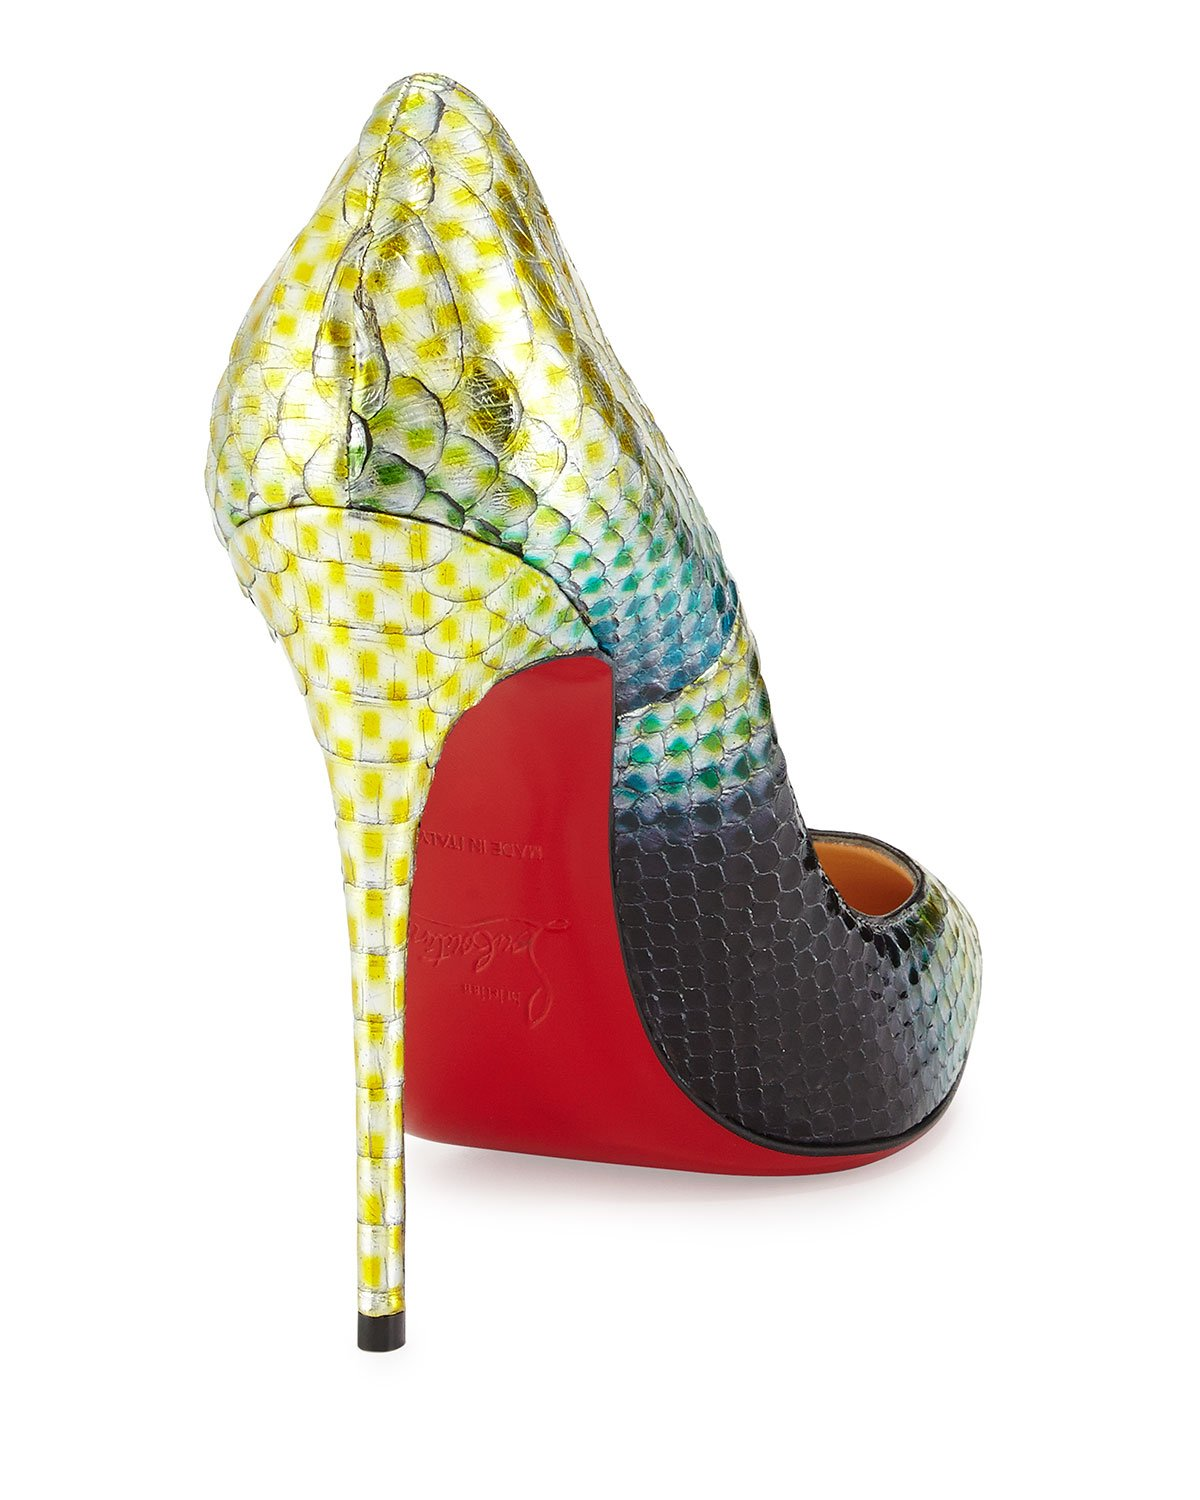 sneaker replicas - Christian louboutin So Kate Python Mermaid Pumps in Multicolor ...